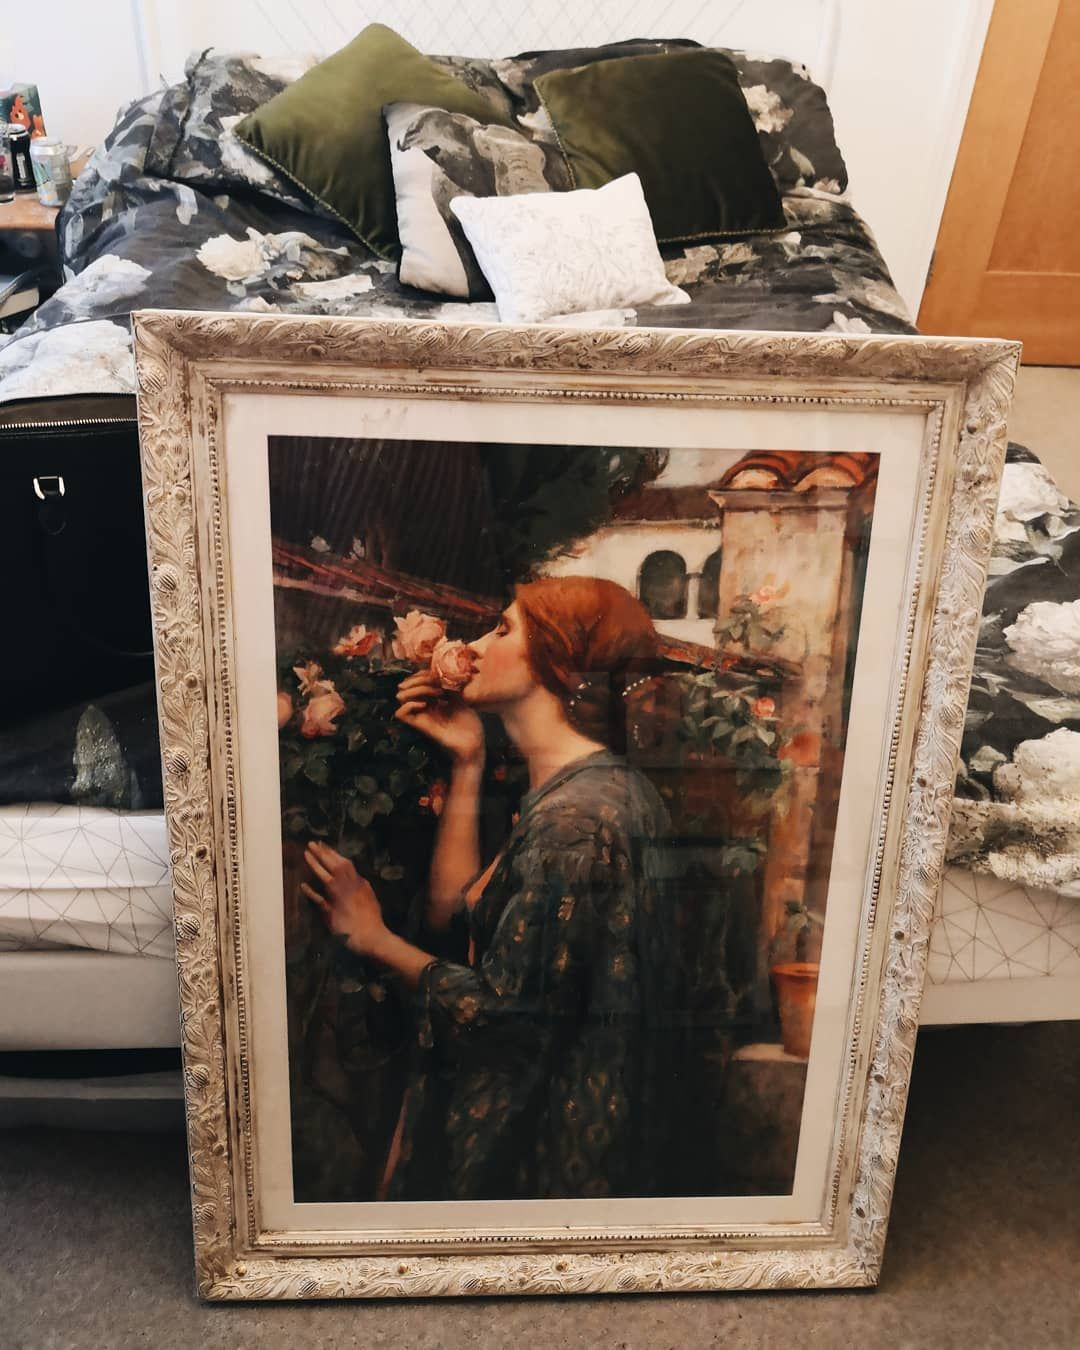 Had to post on the grid #cringe but I cannot believe I just got this beautiful John William Waterhouse print and huge frame for ten pounds off gumtree!! Such a bargain